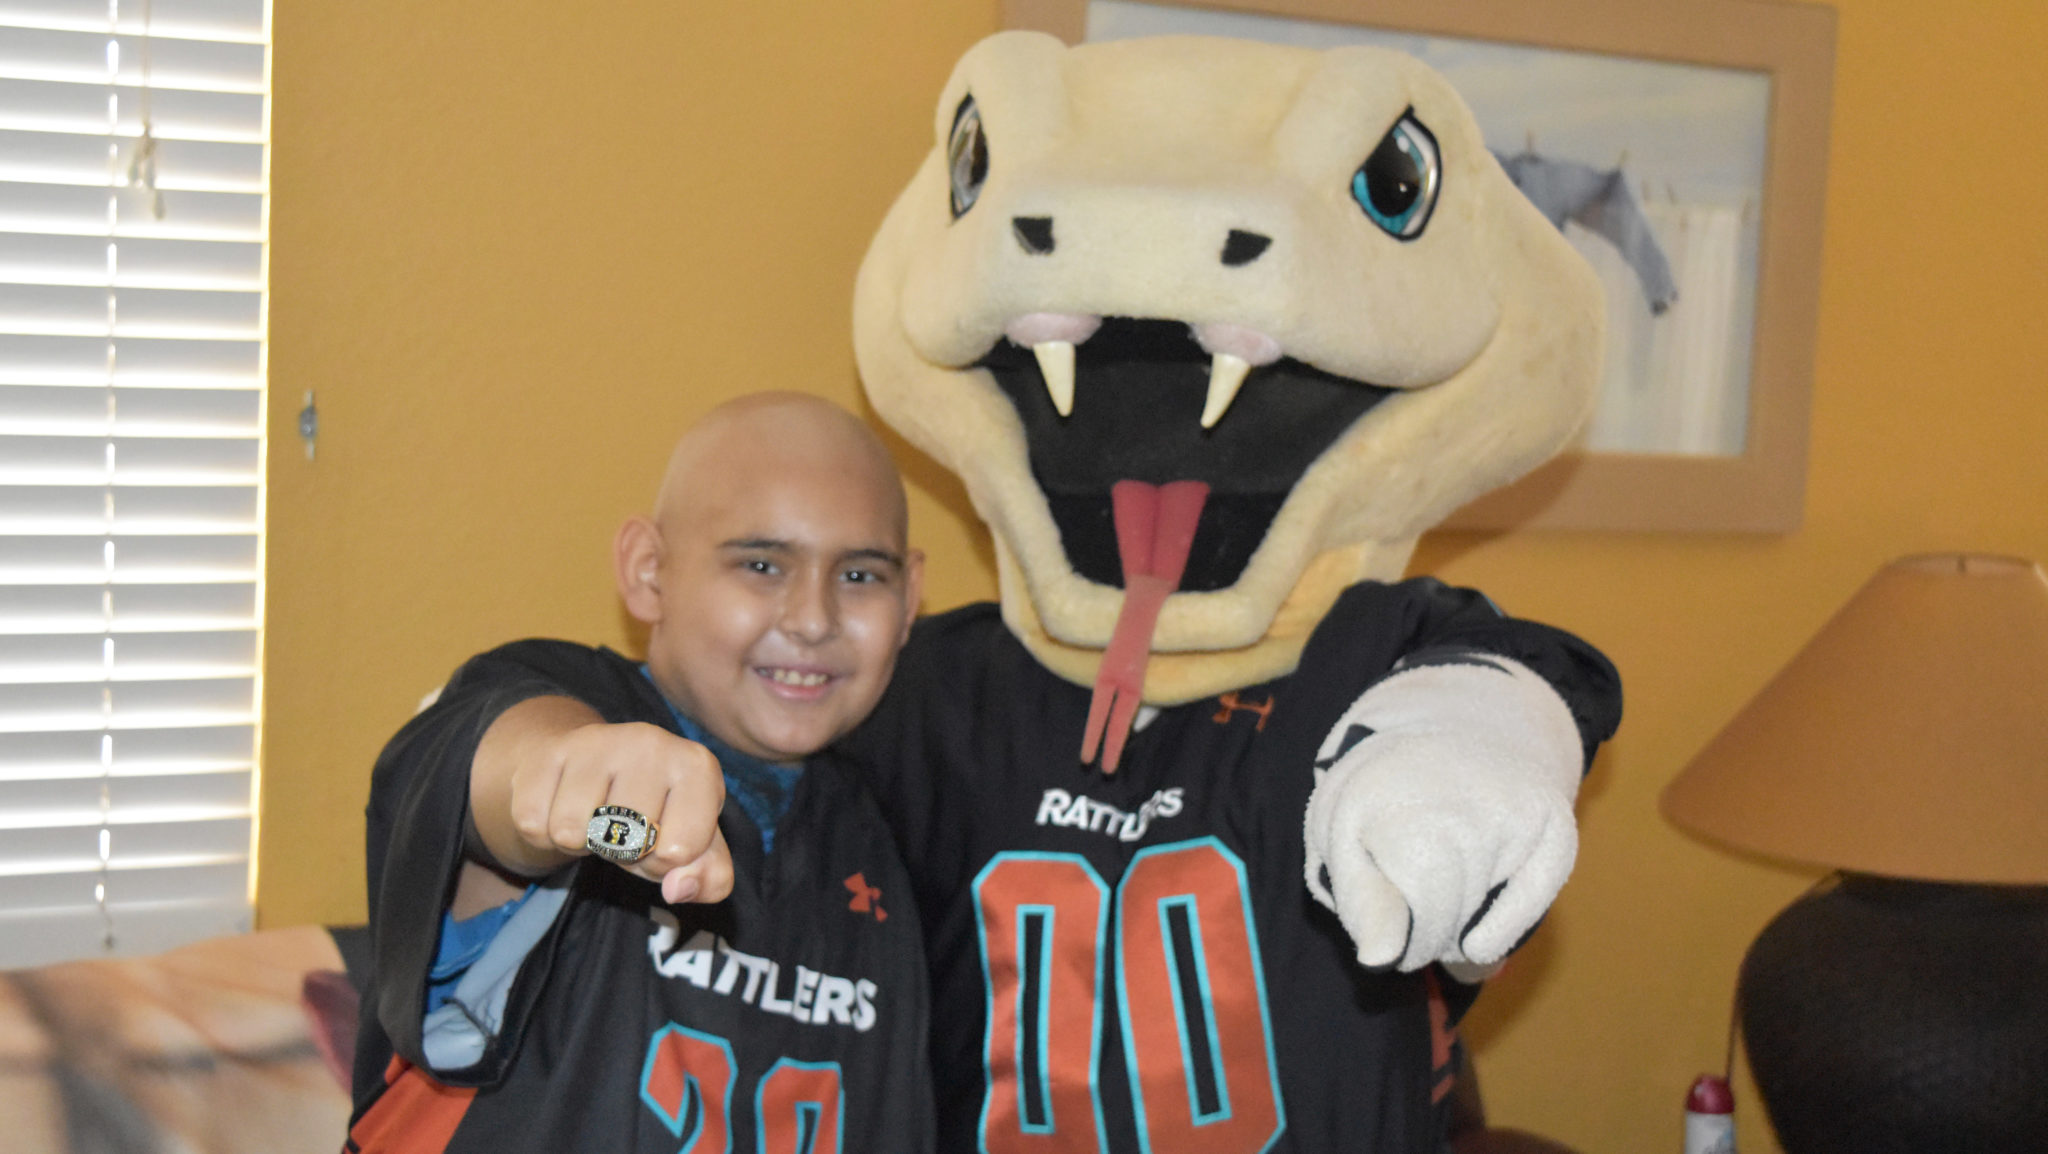 Teenage boy poses with the Arizona Rattlers' mascot